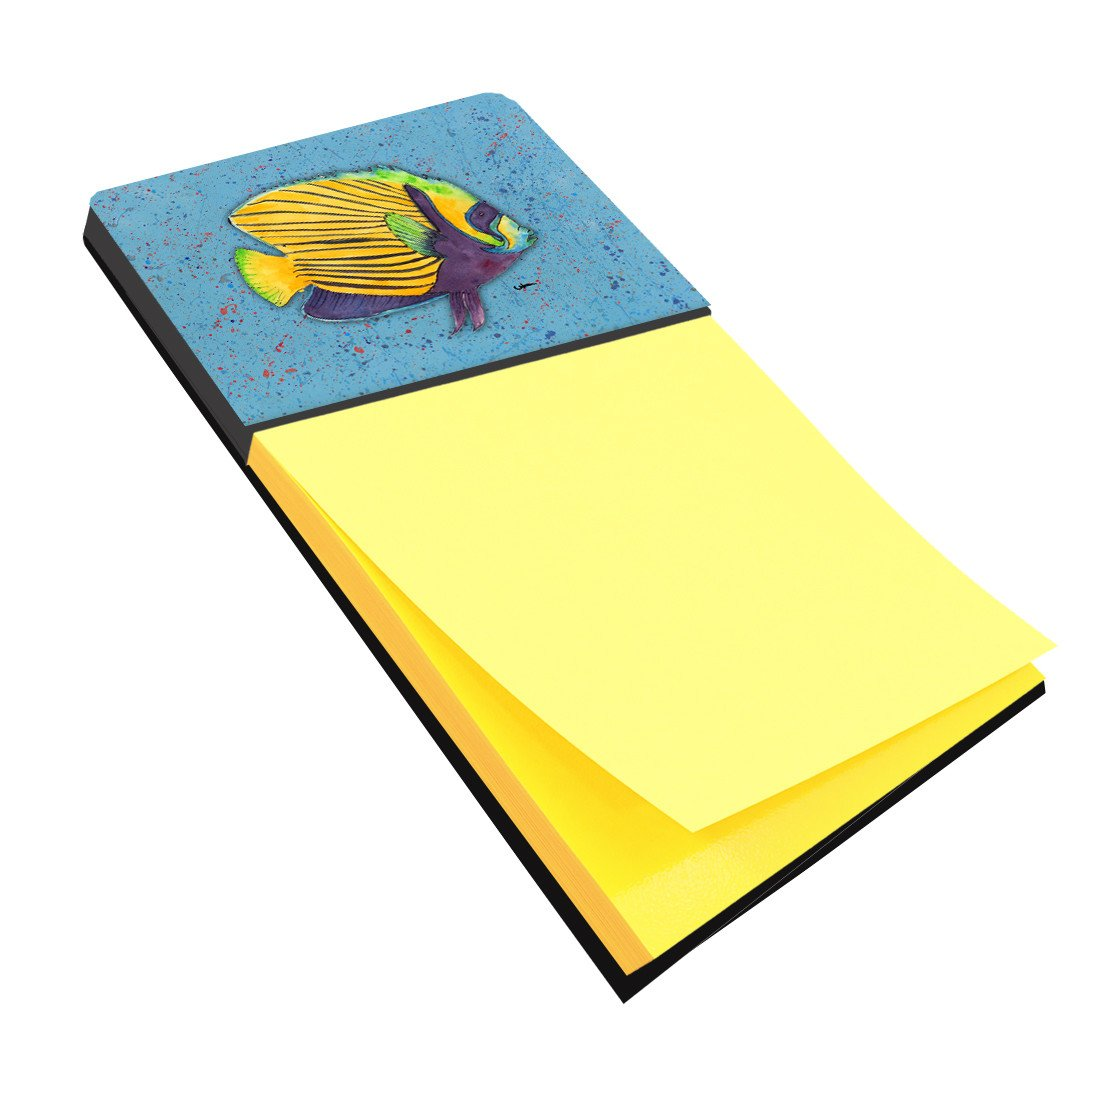 Tropical Fish on Blue Refiillable Sticky Note Holder or Postit Note Dispenser 8579SN by Caroline's Treasures